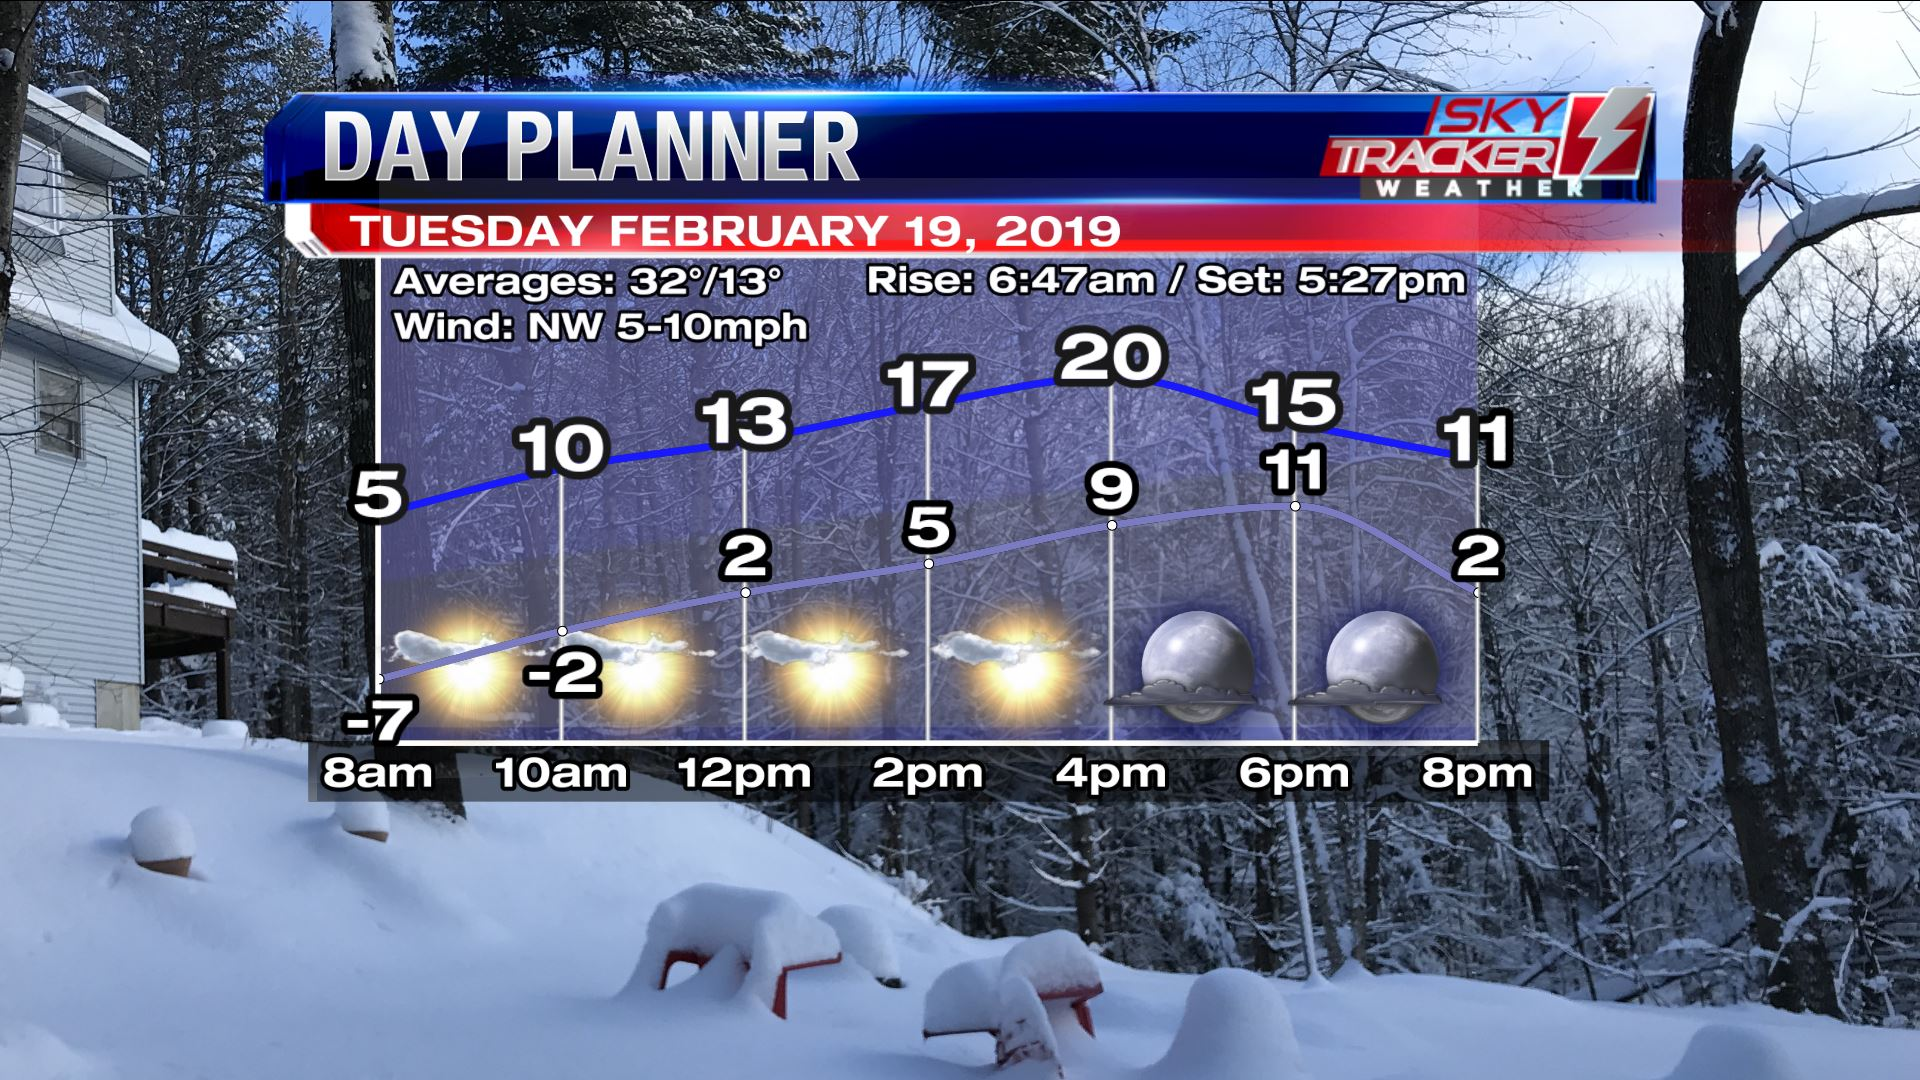 Planner for Tuesday February 19 2019